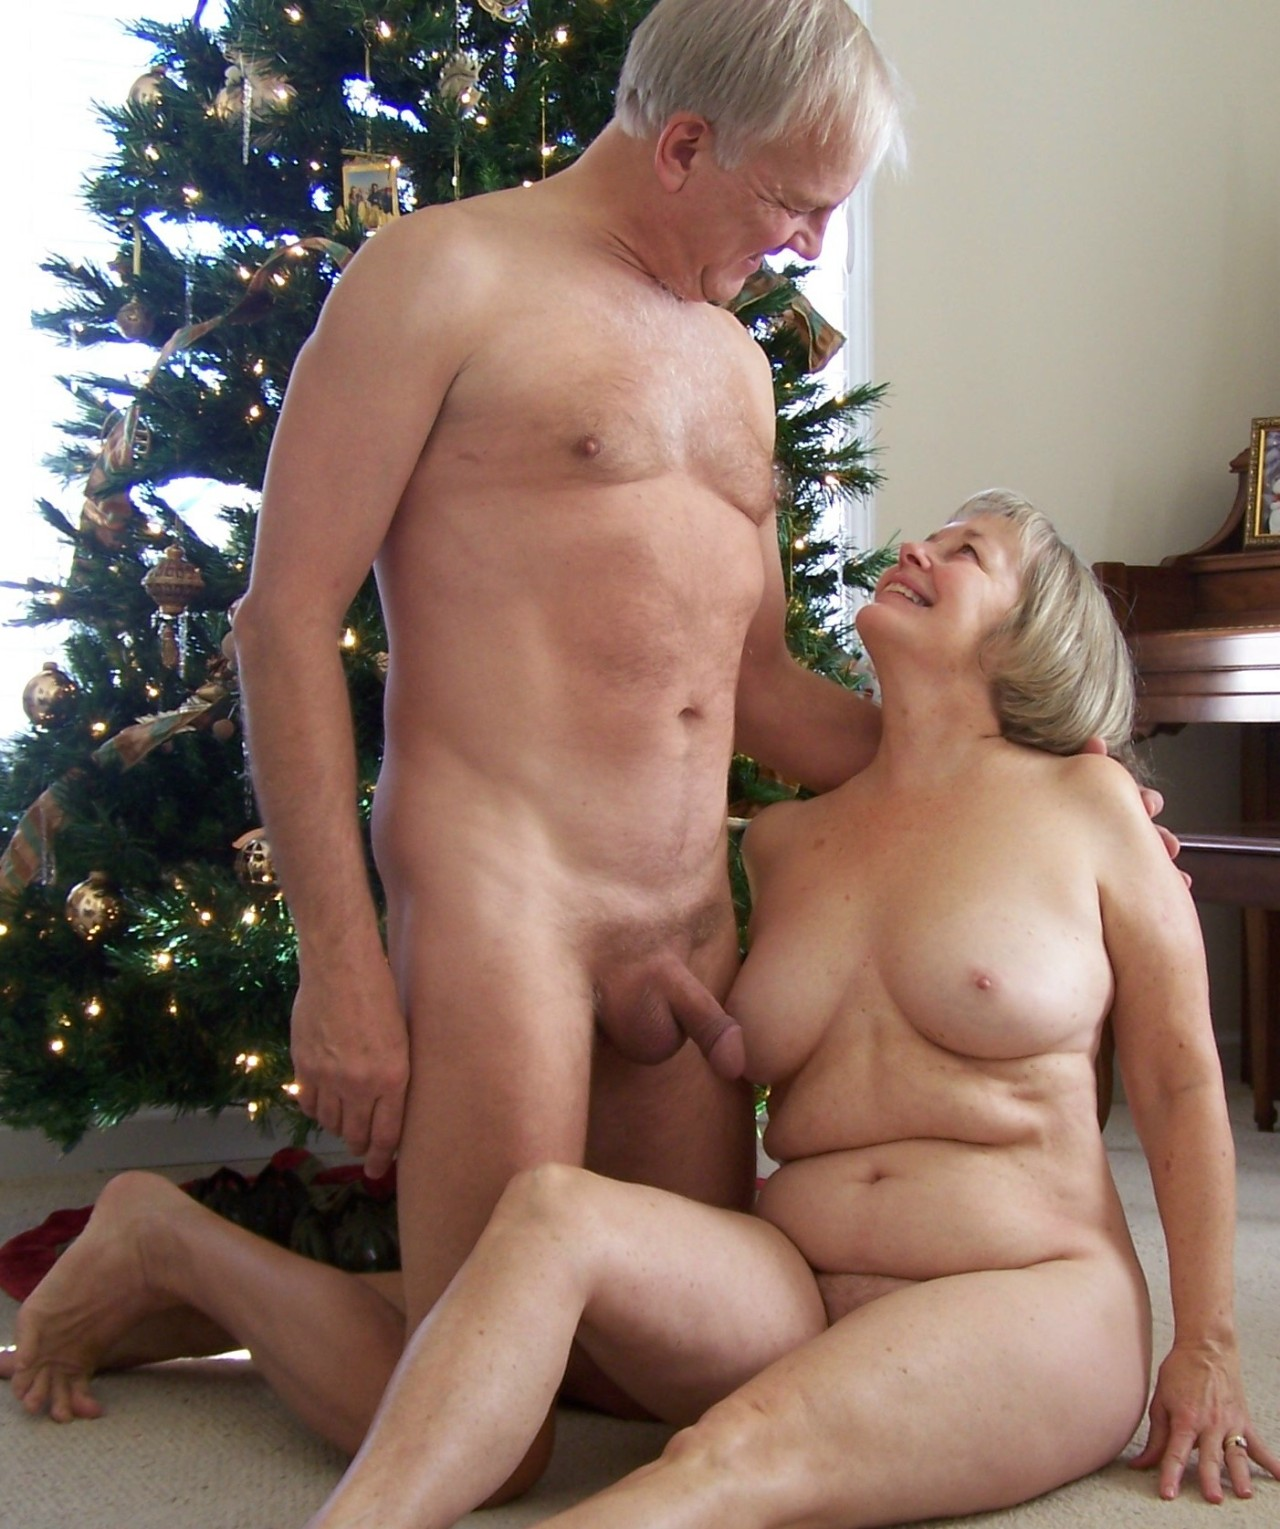 Mature couple nude videos #1